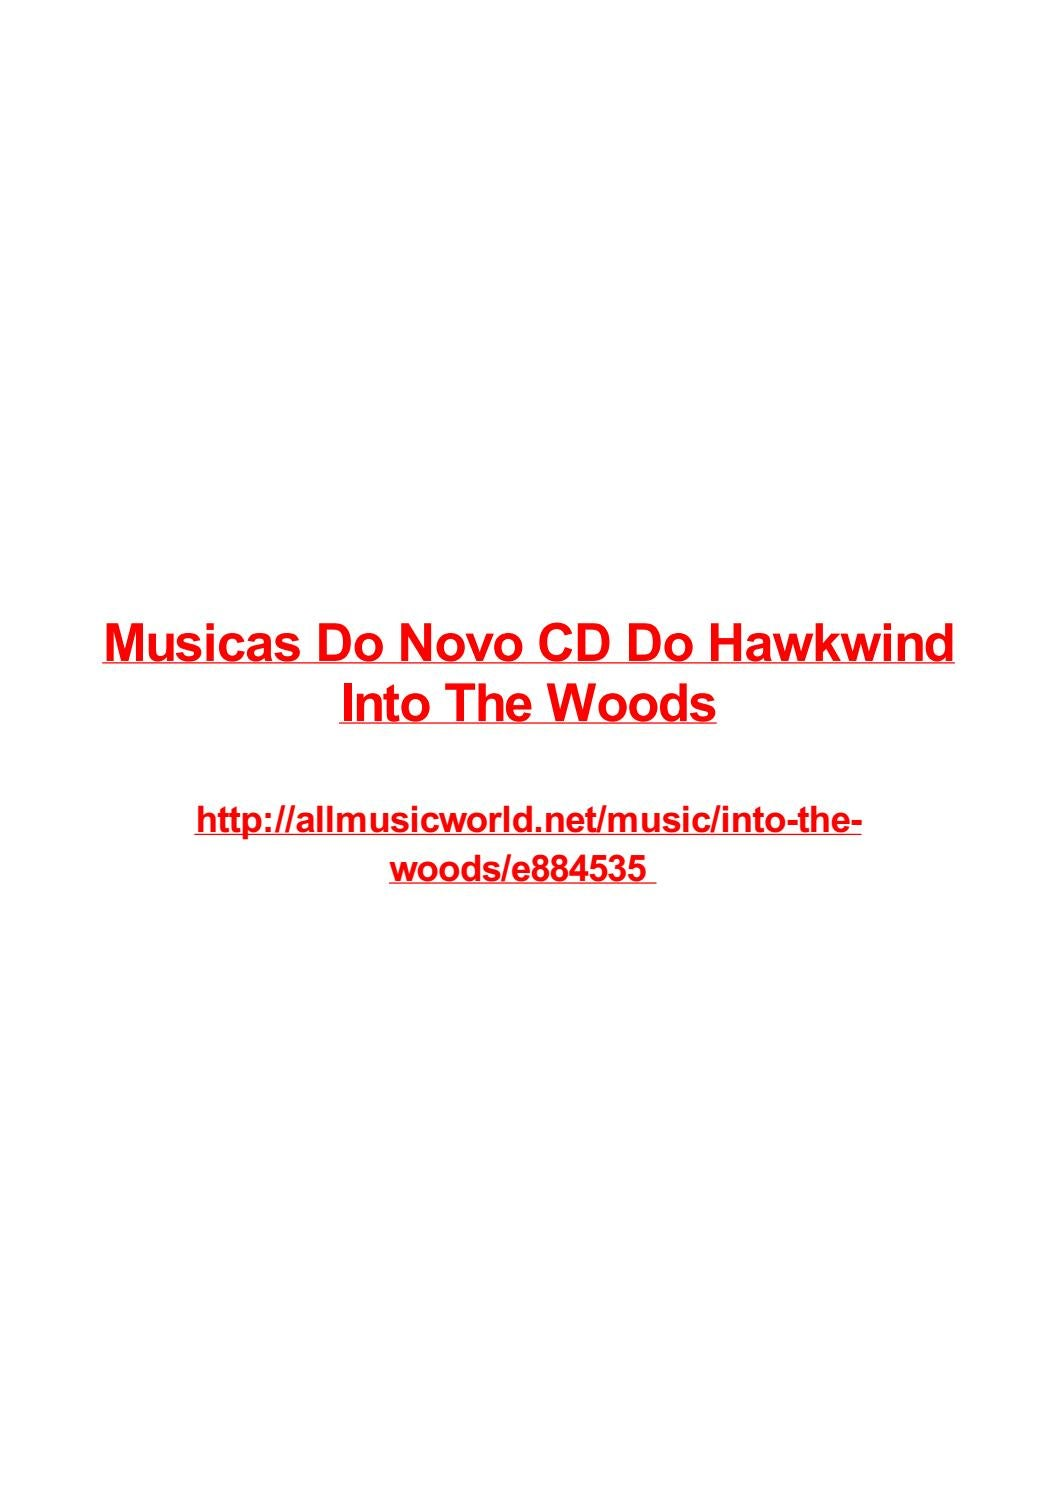 Musicas Do Novo Cd Do Hawkwind Into The Woods By Frank Seamons Issuu